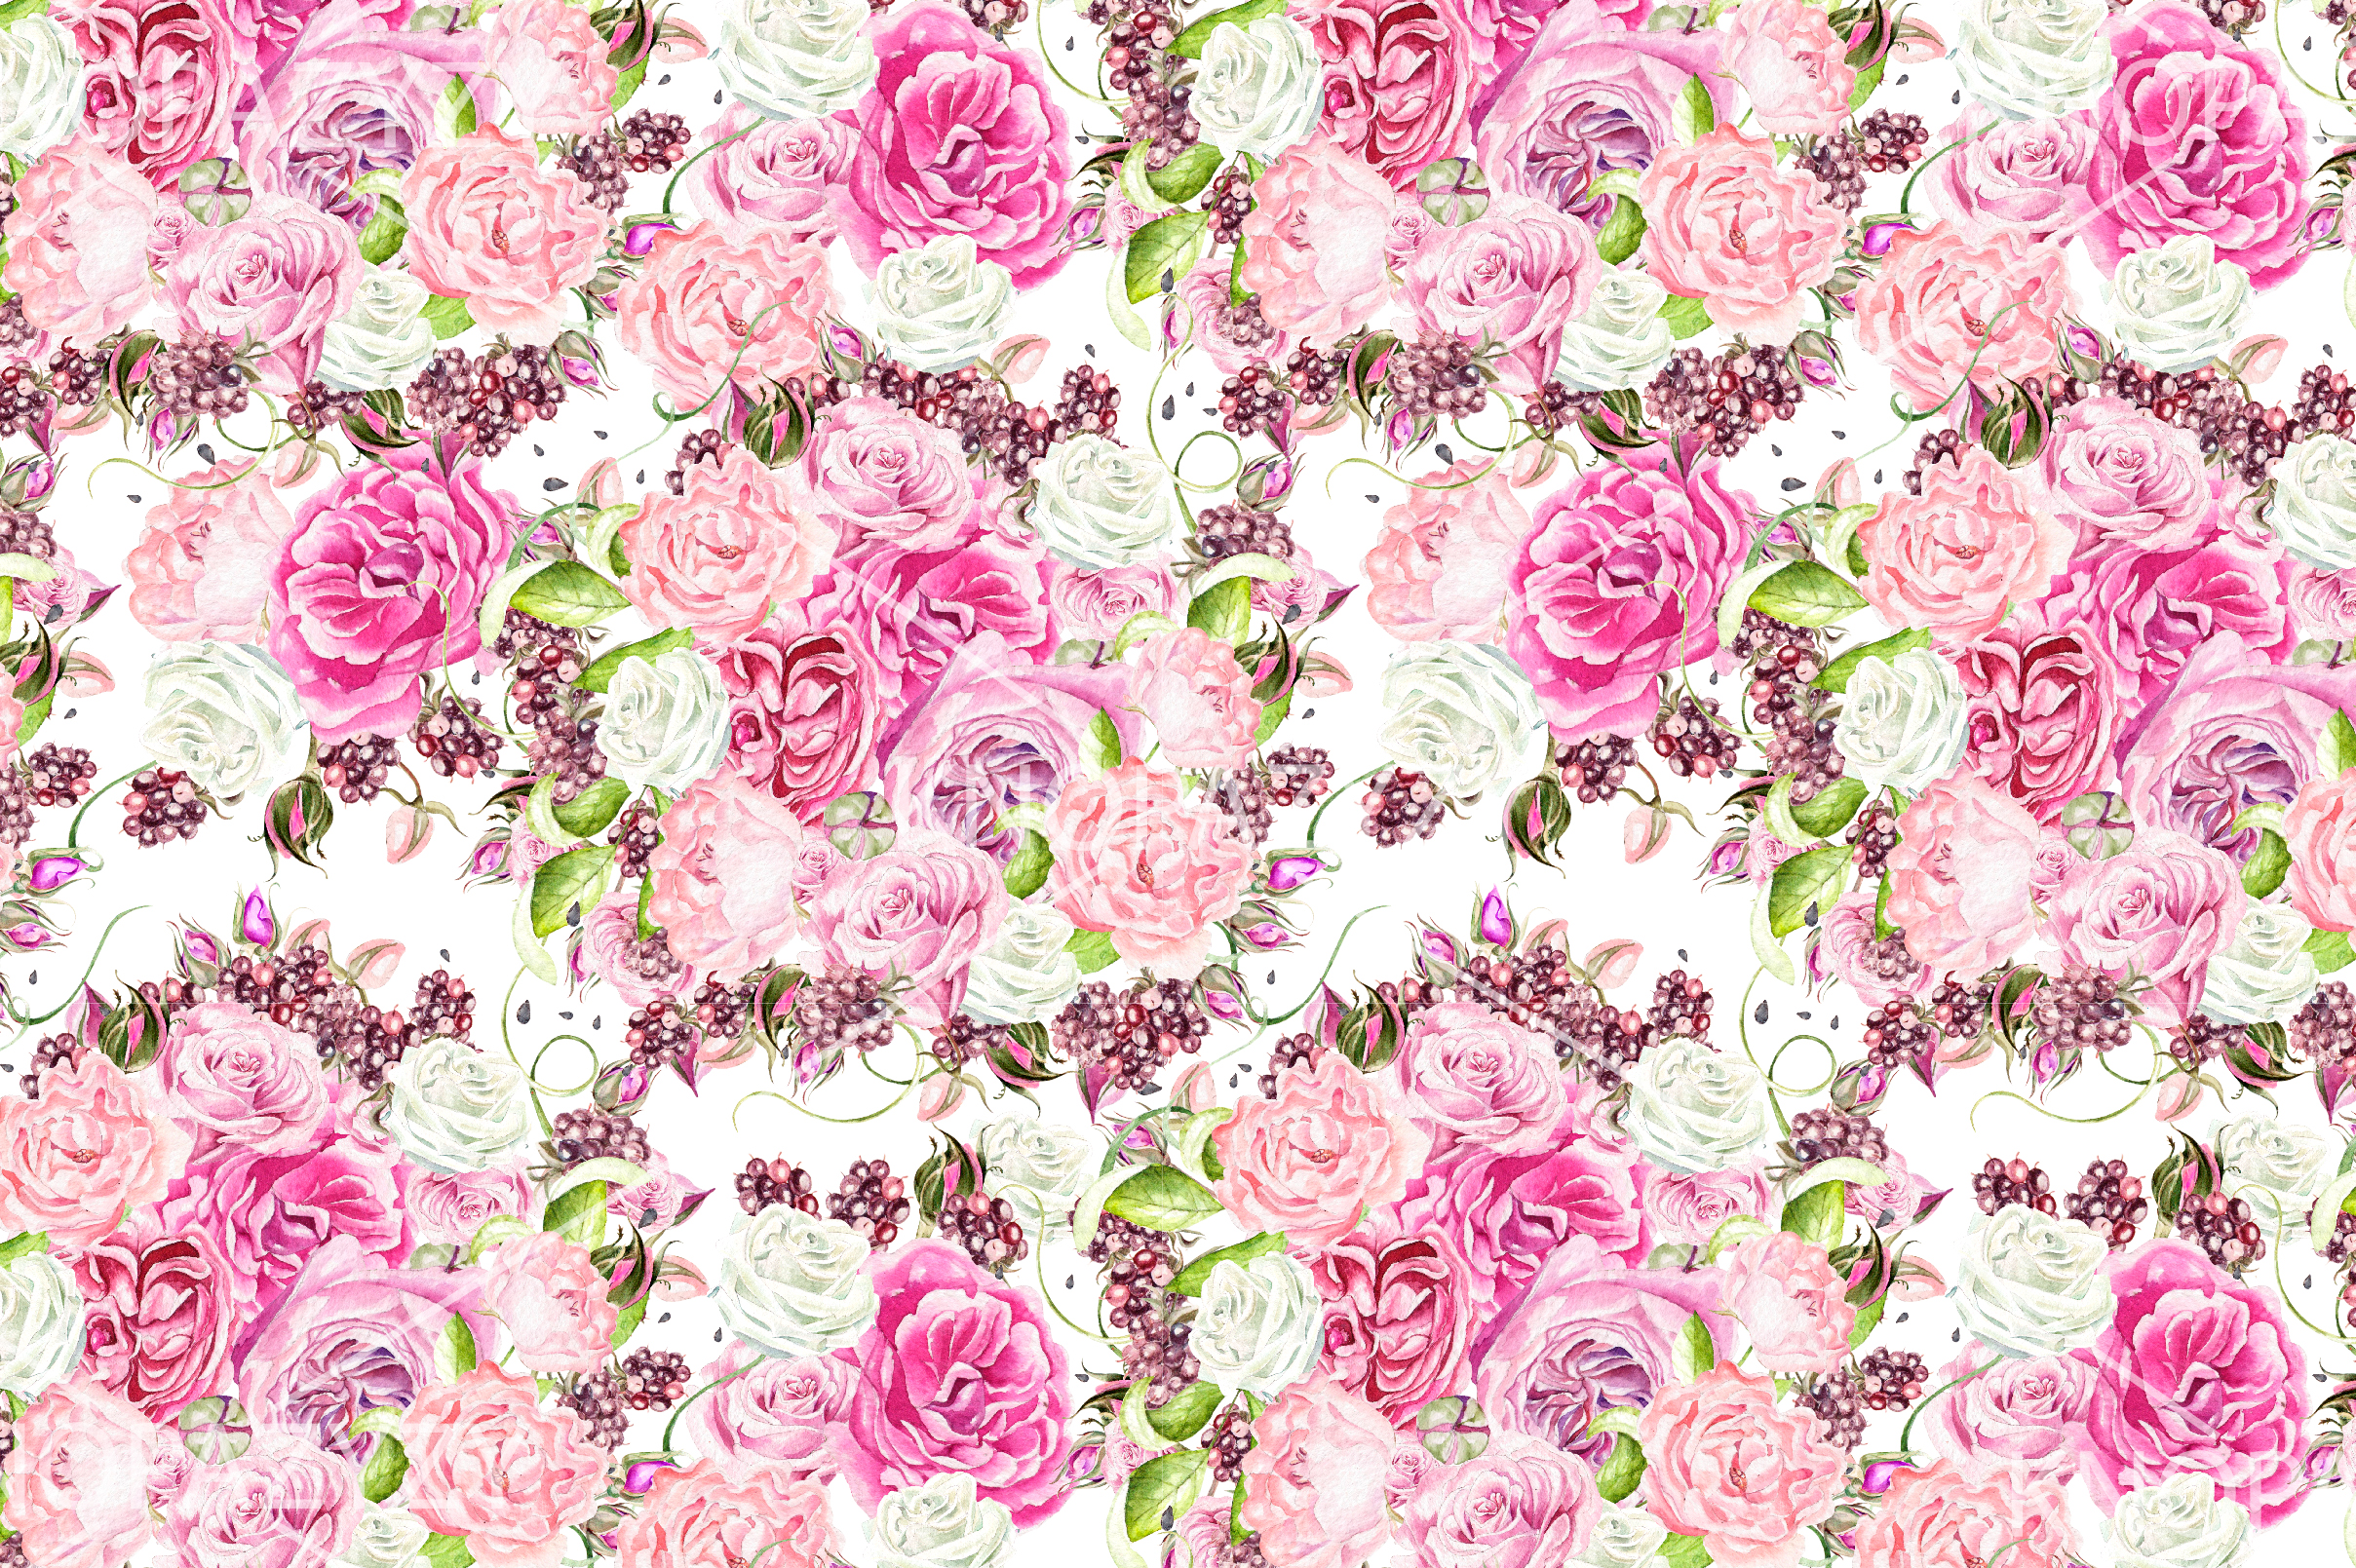 15 Hand Drawn Watercolor PATTERNS example image 10